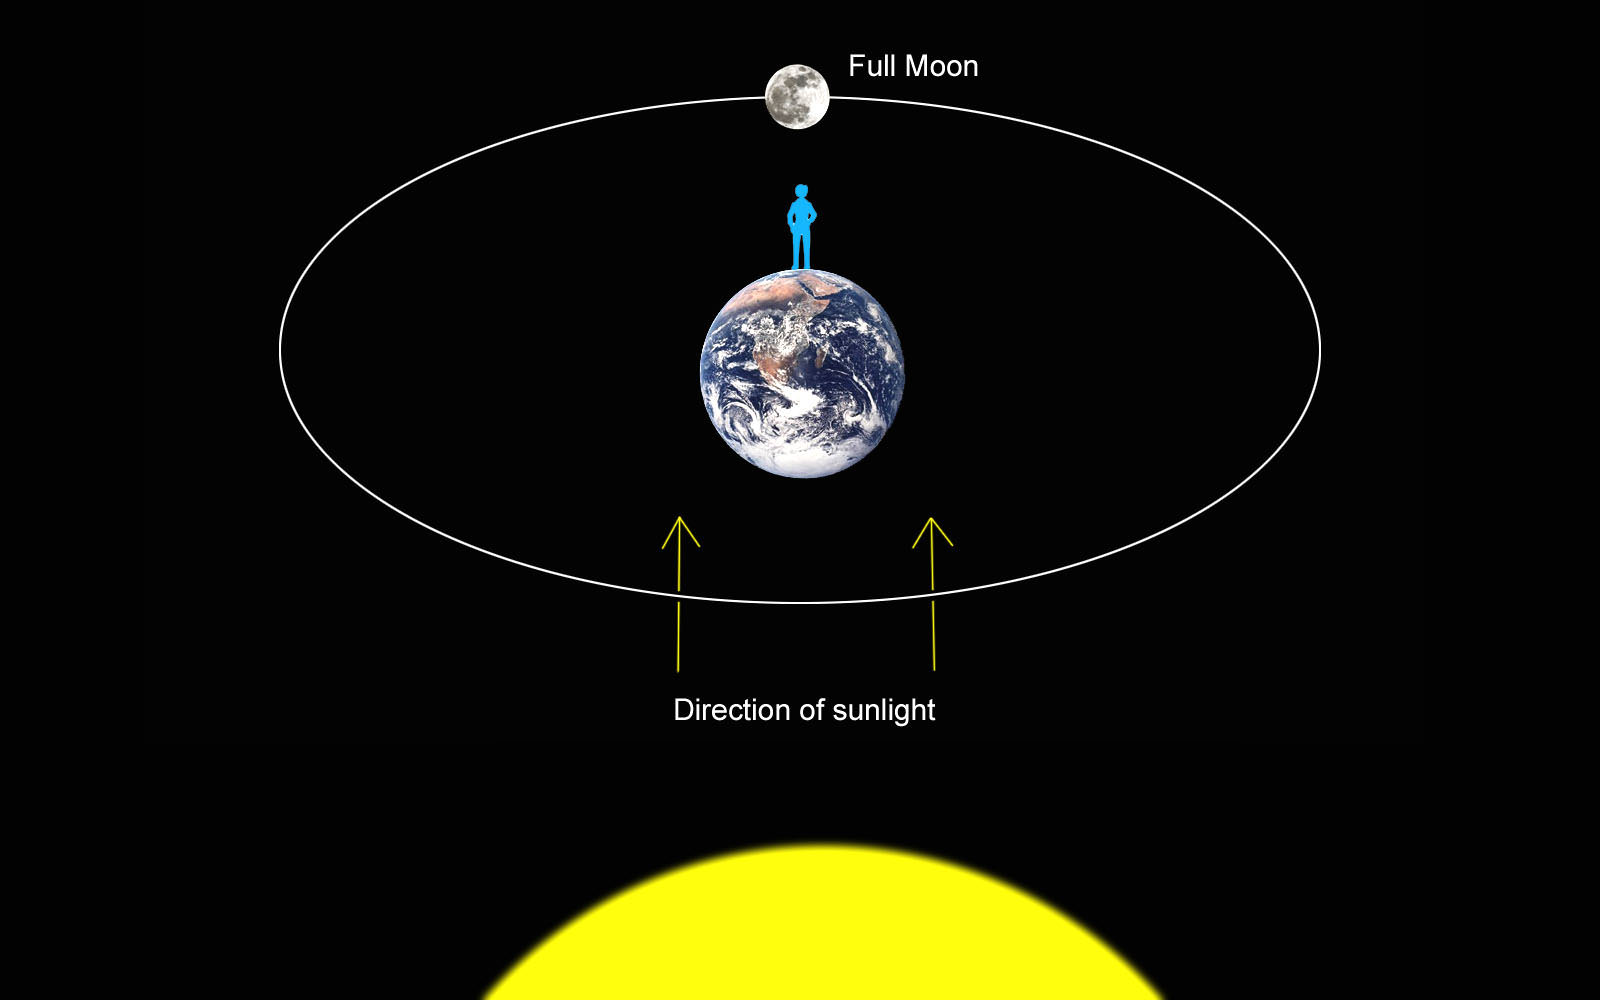 a diagram of the sun ezgo forward reverse switch wiring august full moon anticipates september 39s total lunar